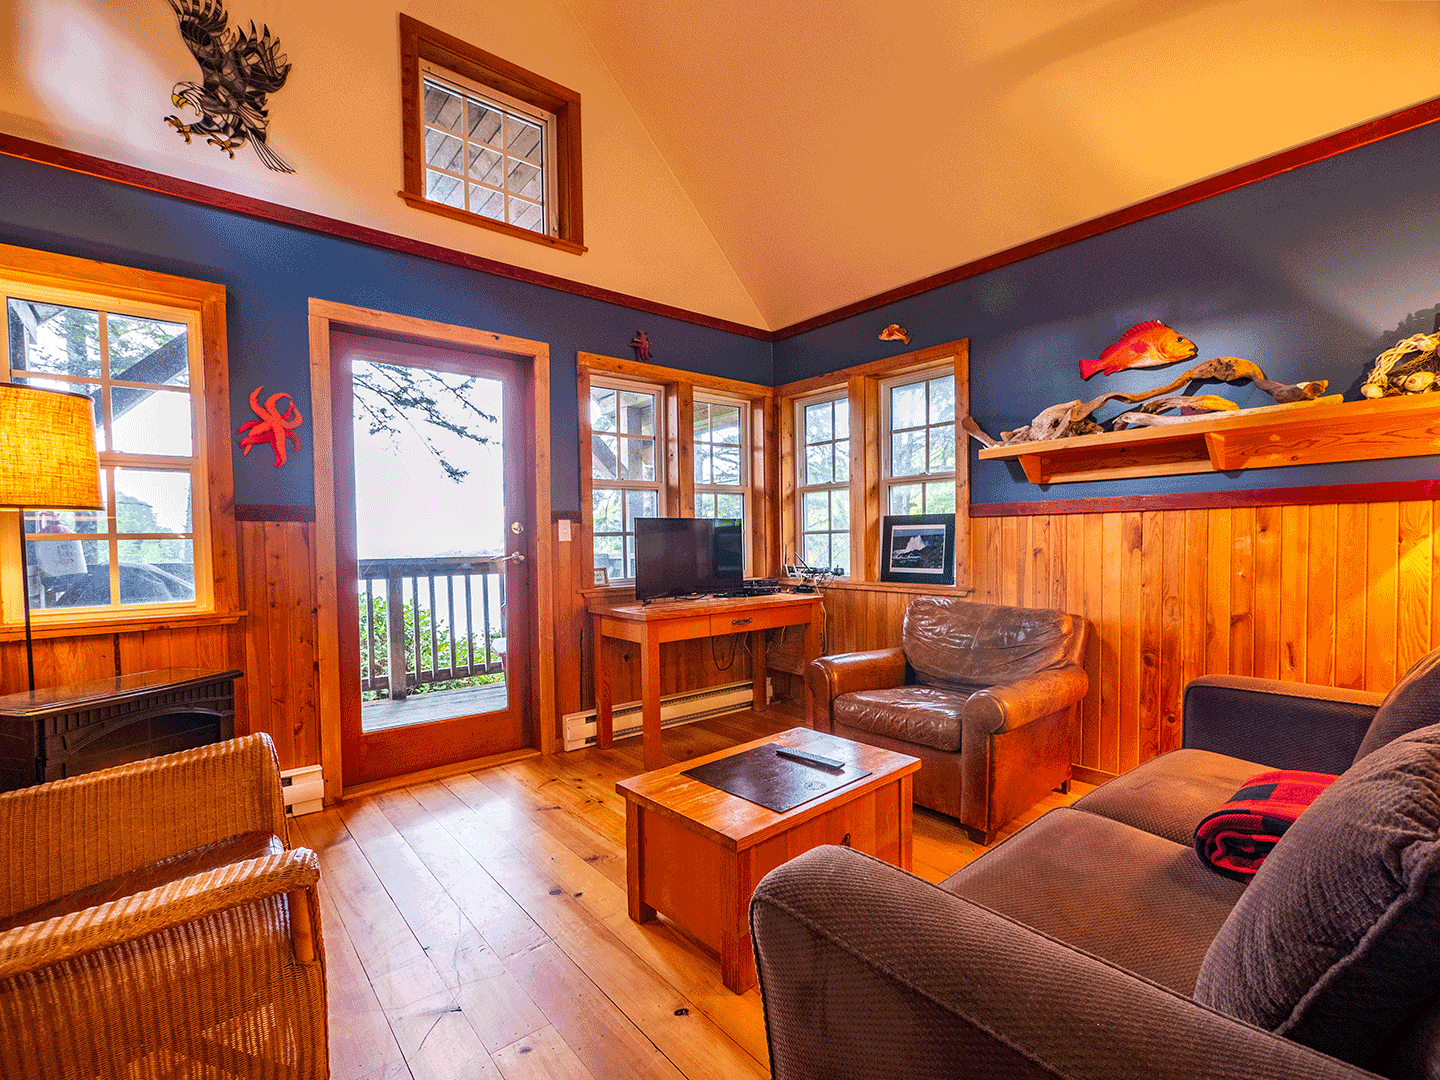 ocean front vacation rentals in ucluelet - karma